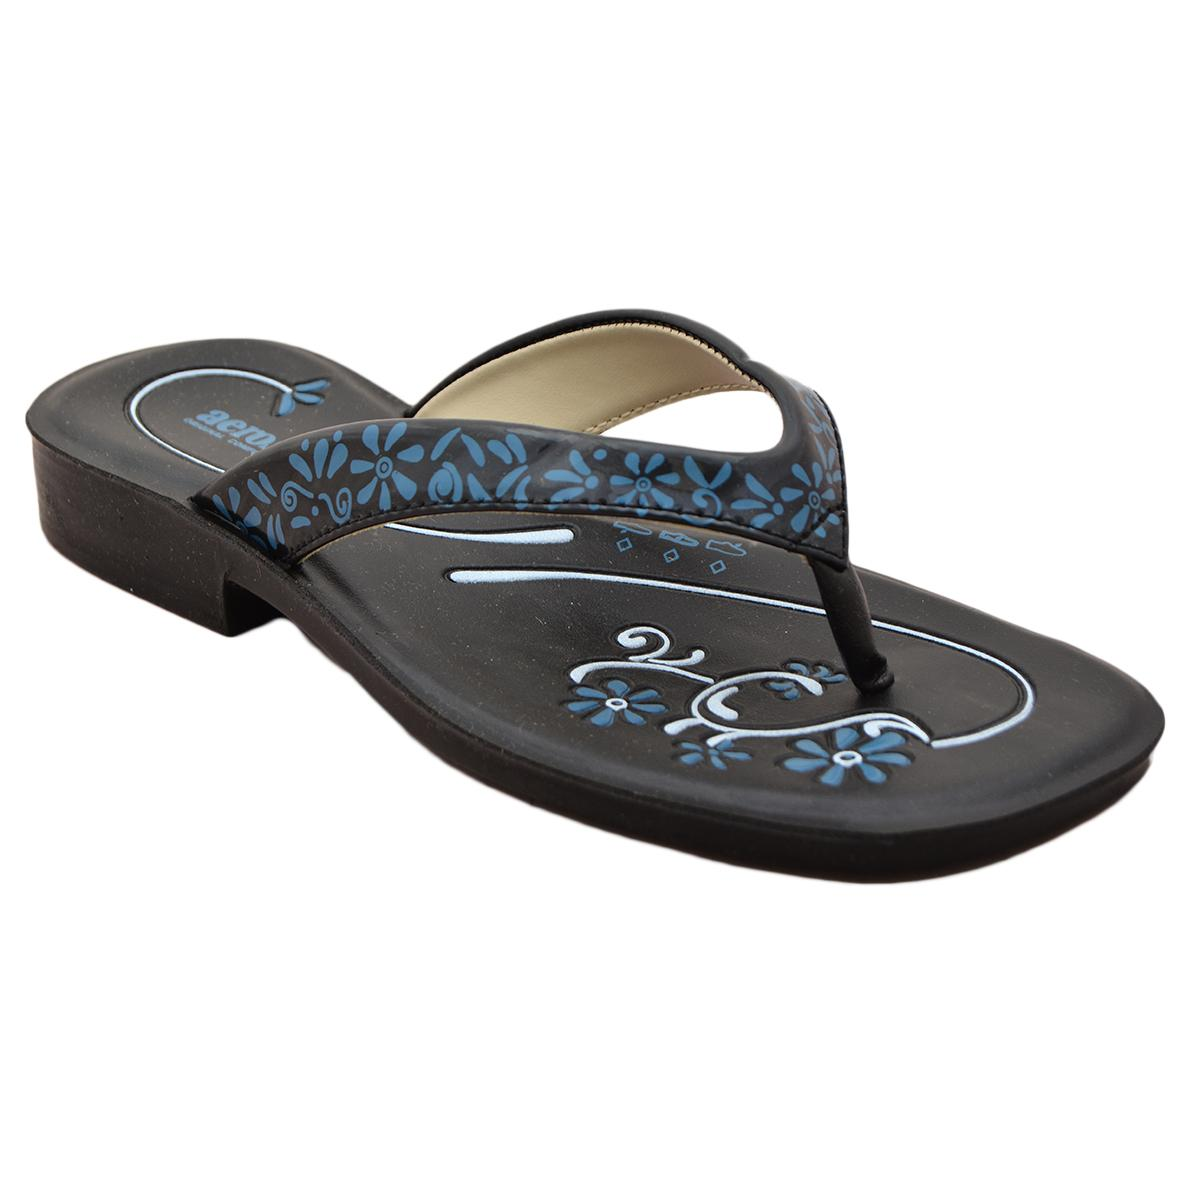 Aerosoft Synthetic Leather Slippers For Women A3008